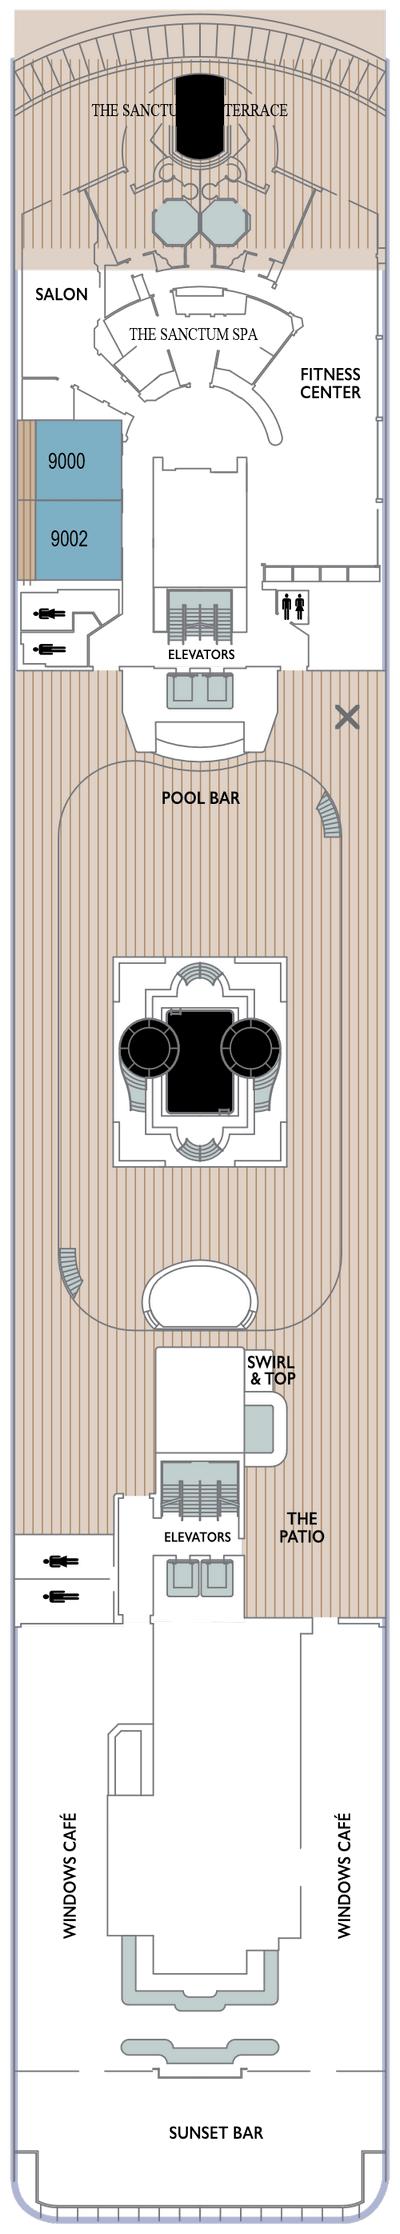 Azamara Quest Deck 9 layout